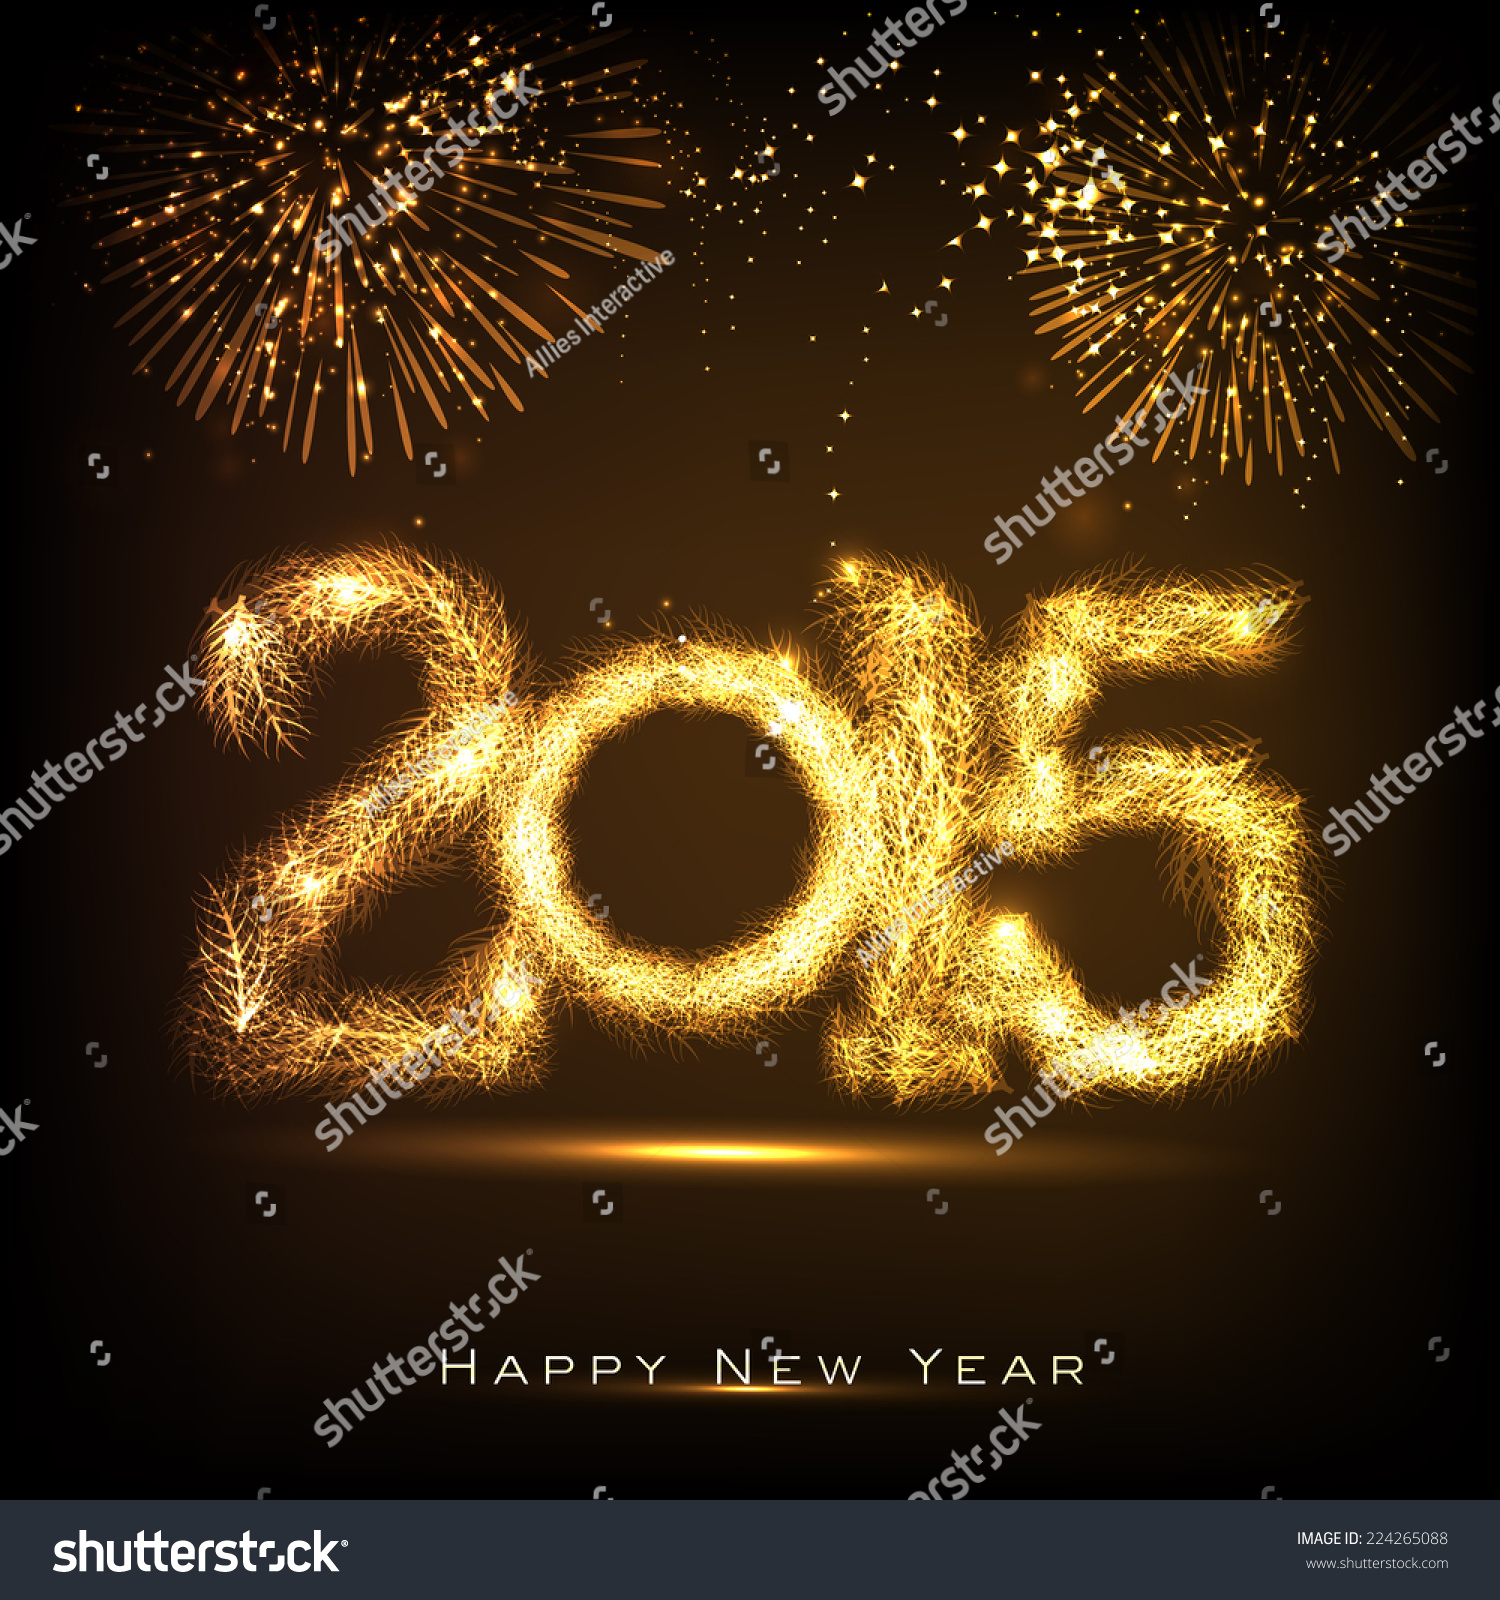 Happy New Year 2015 Celebrations Greeting Stock Vector Royalty Free